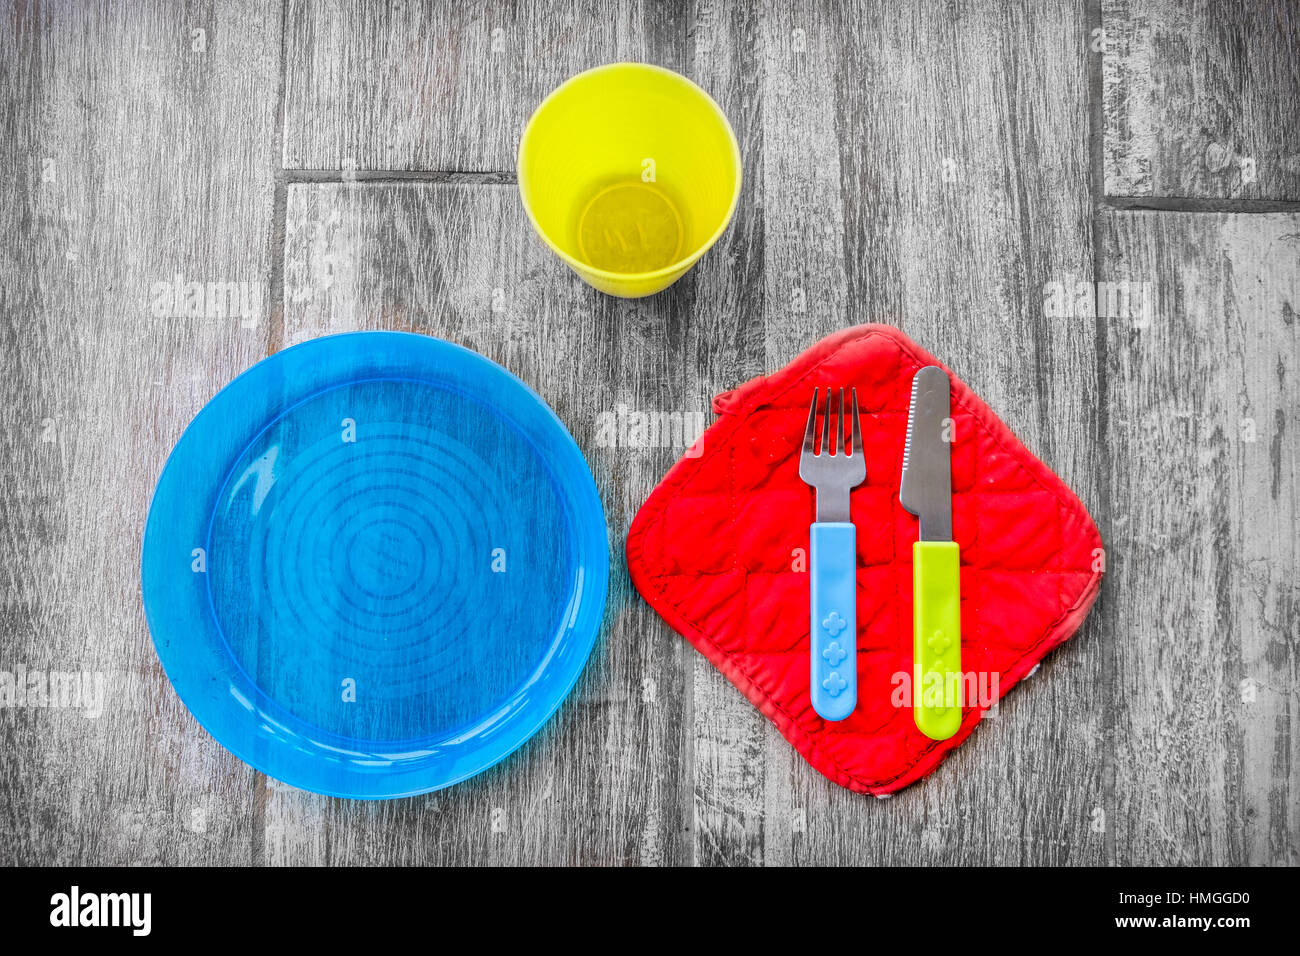 children cutlery silverware baby background colorful - Stock Image